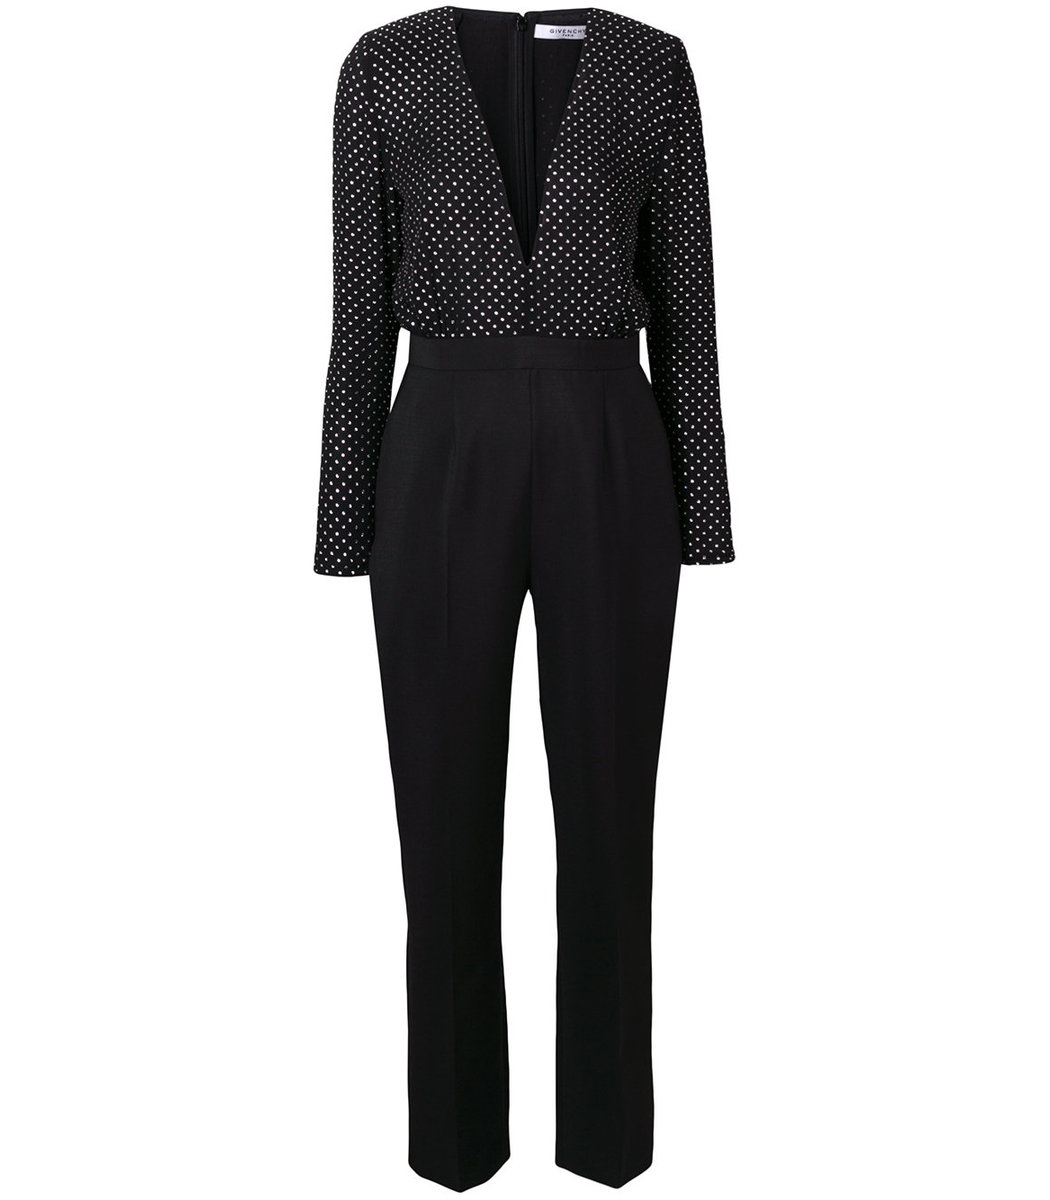 Black Polka Dot Tailored Jumpsuit